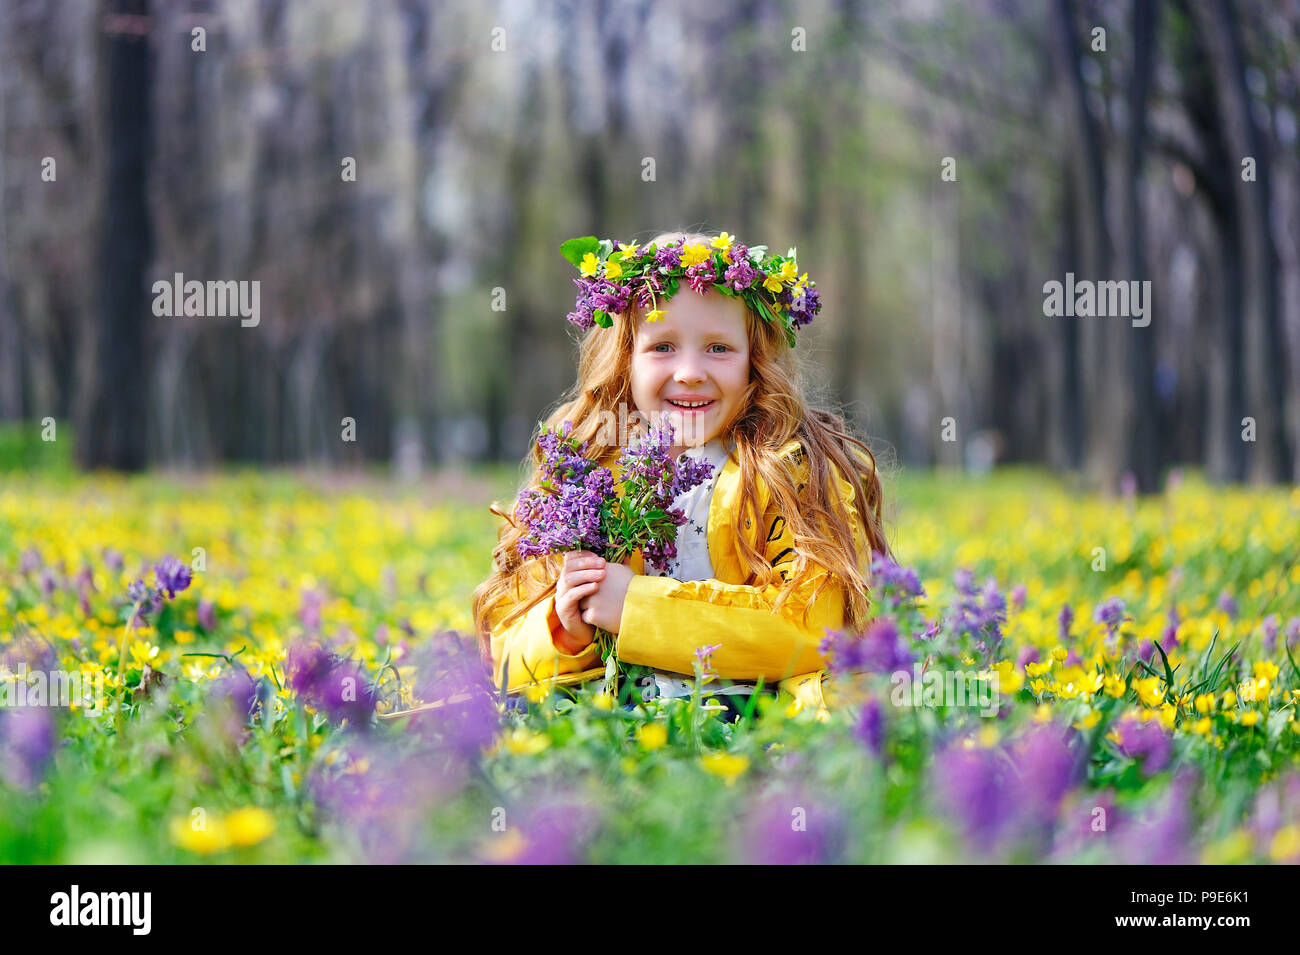 Little Girl In A Flower Headband With Flowers Bouquet Stock Photo